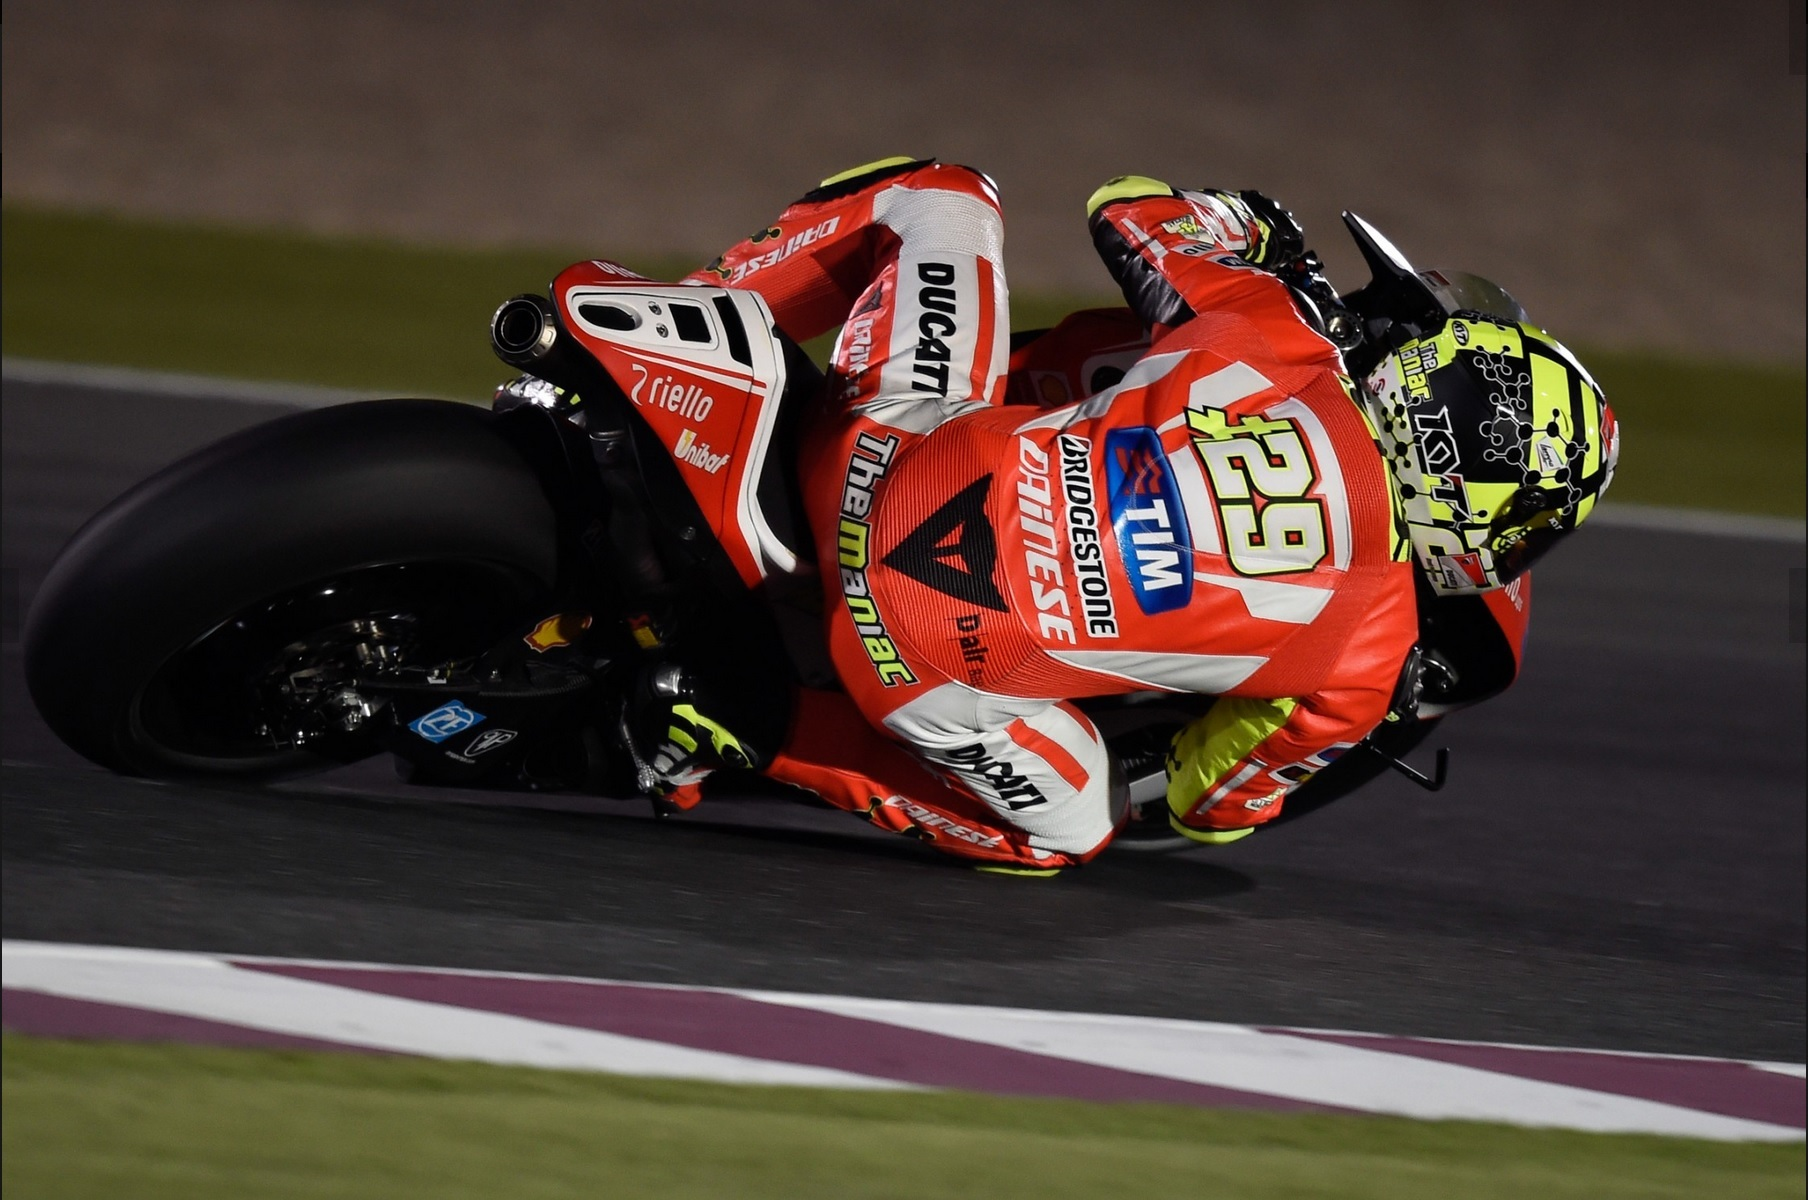 2015 MotoGP Qatar Live Streaming: Watch MotoGP Race Online [PREVIEW]